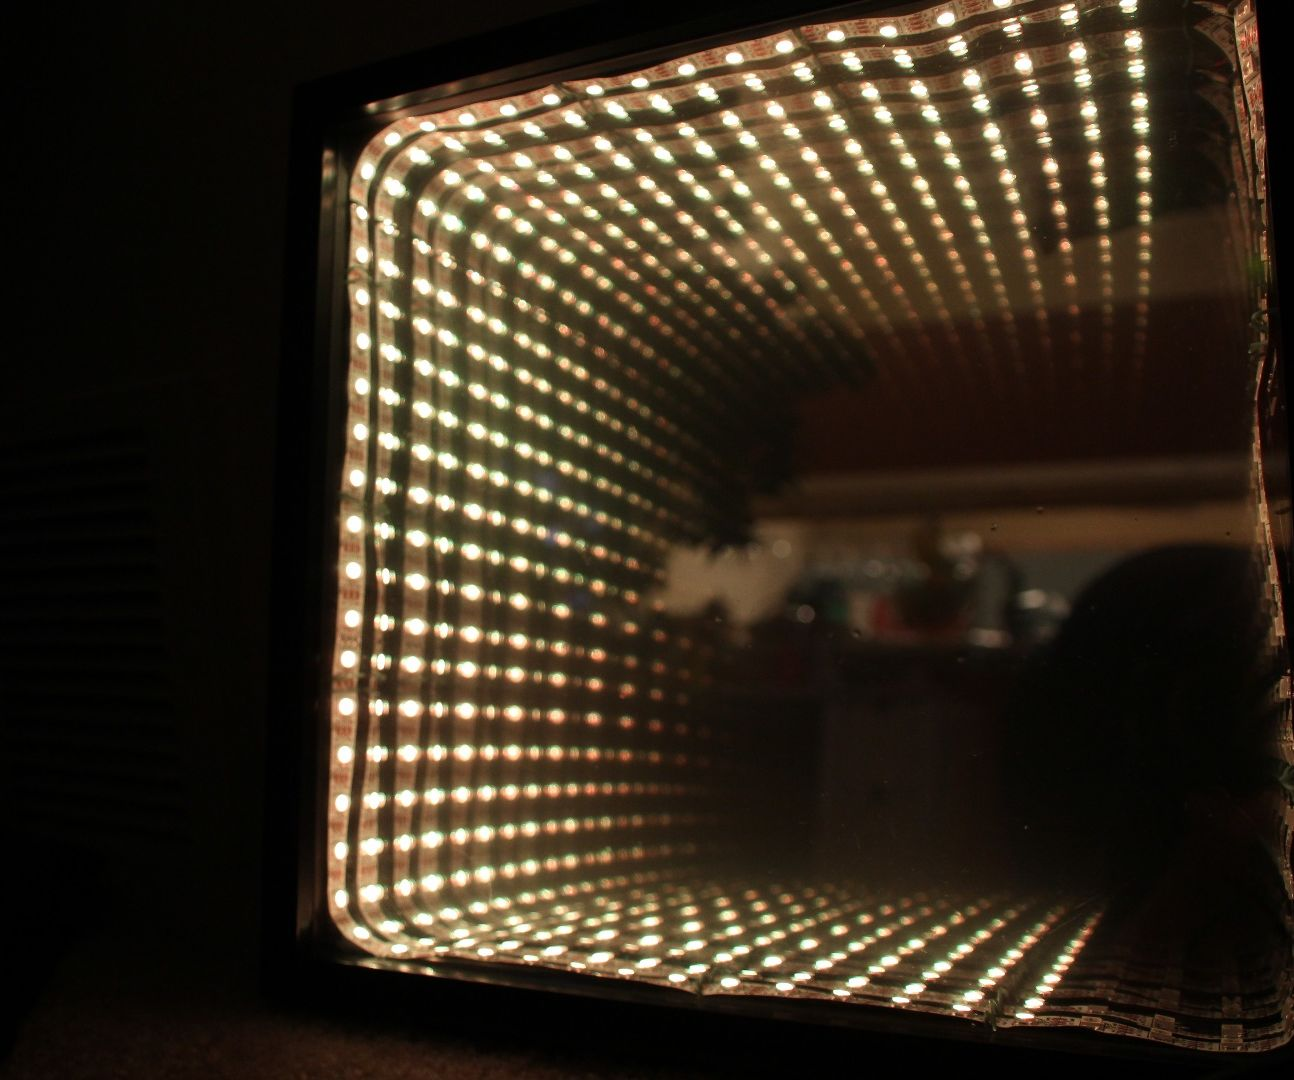 Chromatic Temperature Display - Arduino Controlled RBG LED Infinity Mirror